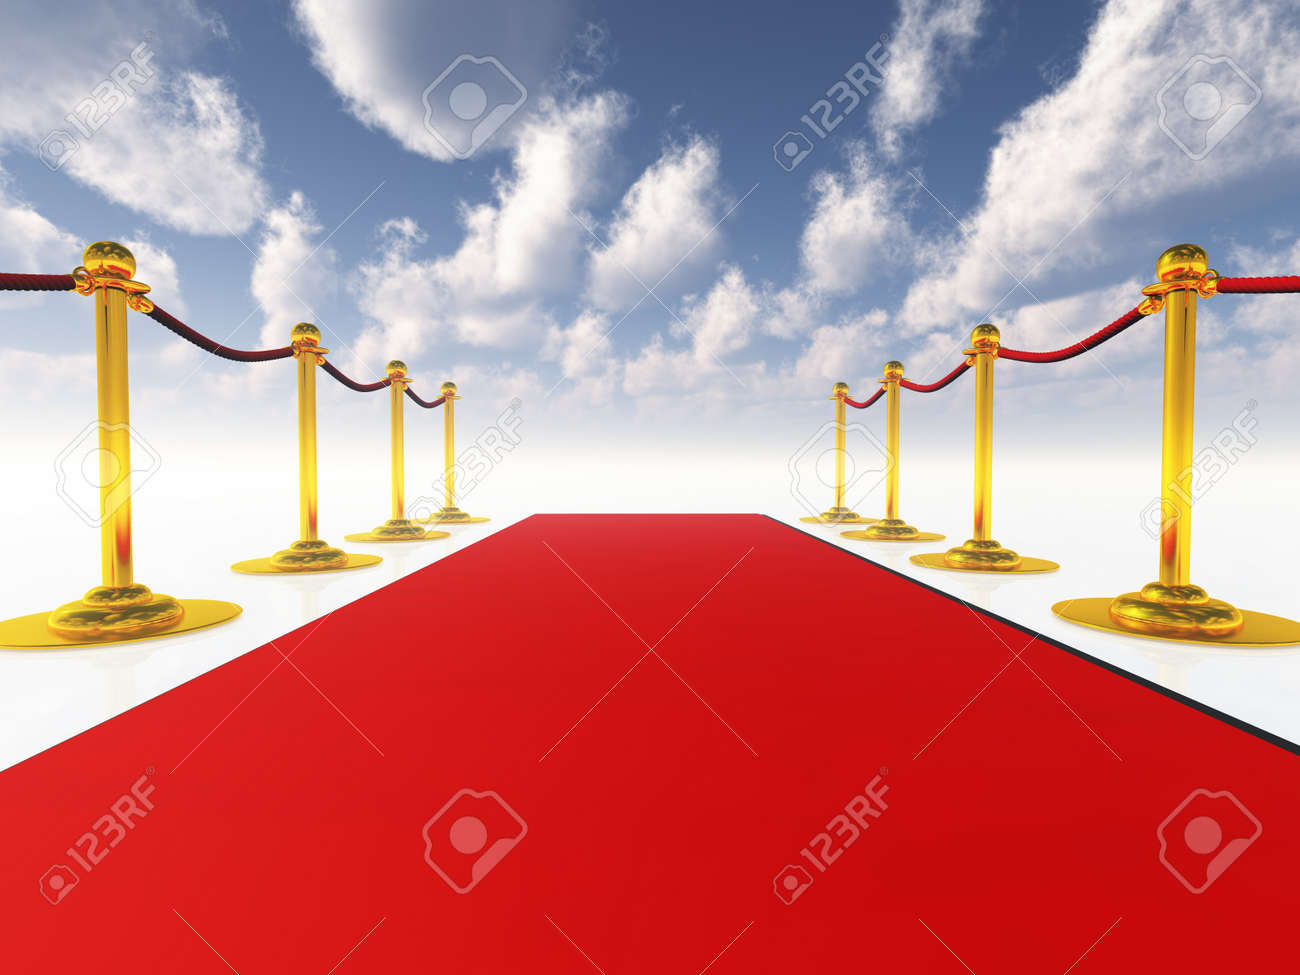 Red Carpet Stock Photo - 10055747